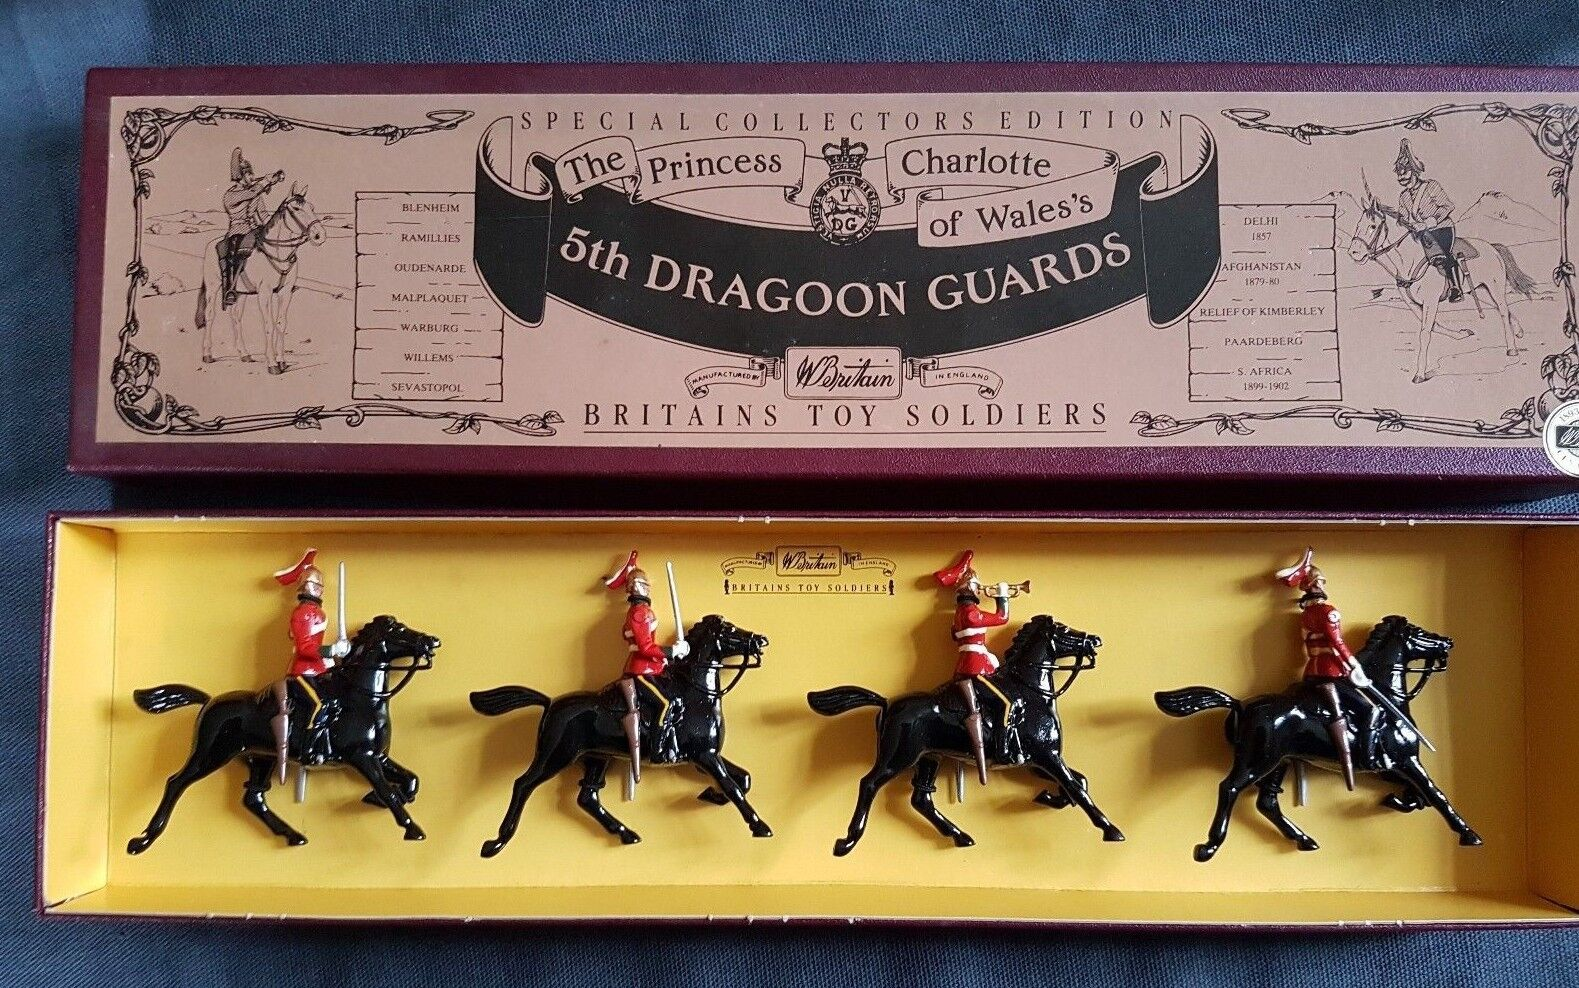 Britains Metal The Princess Charlotte of Wale's 5th DRAGOON GUARDS